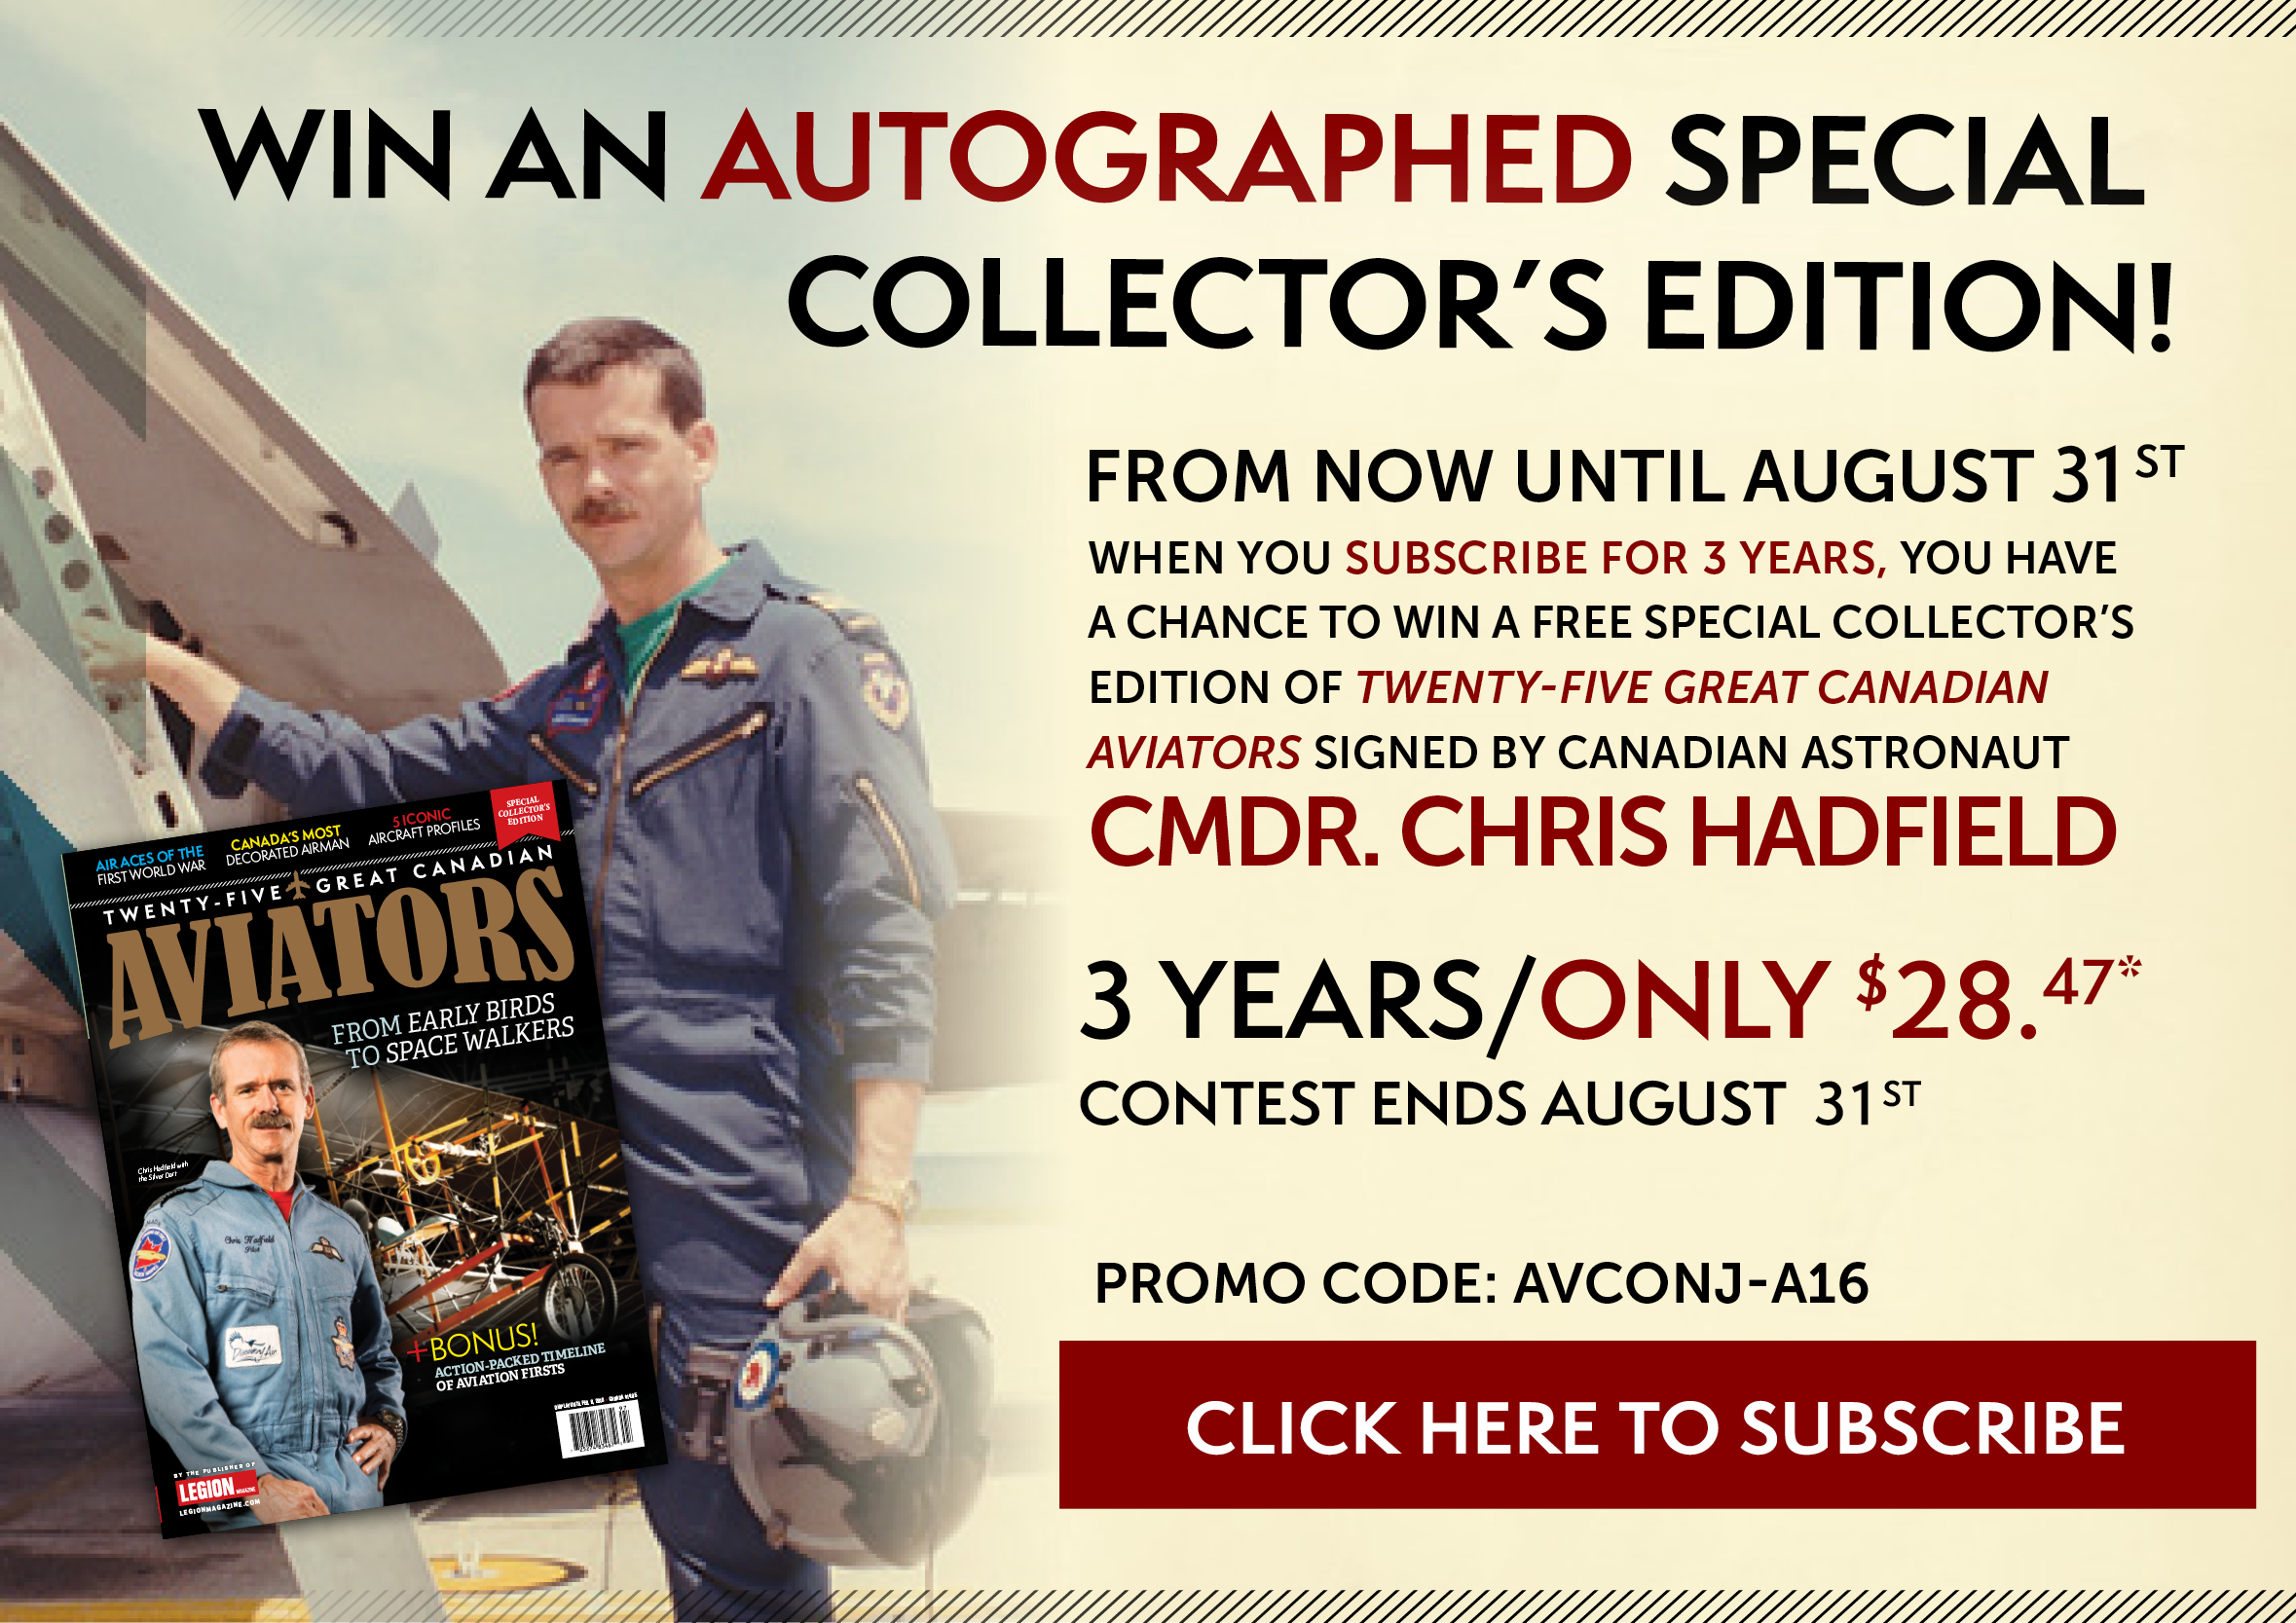 Win a Chris Hadfield autographed edition of Aviators!